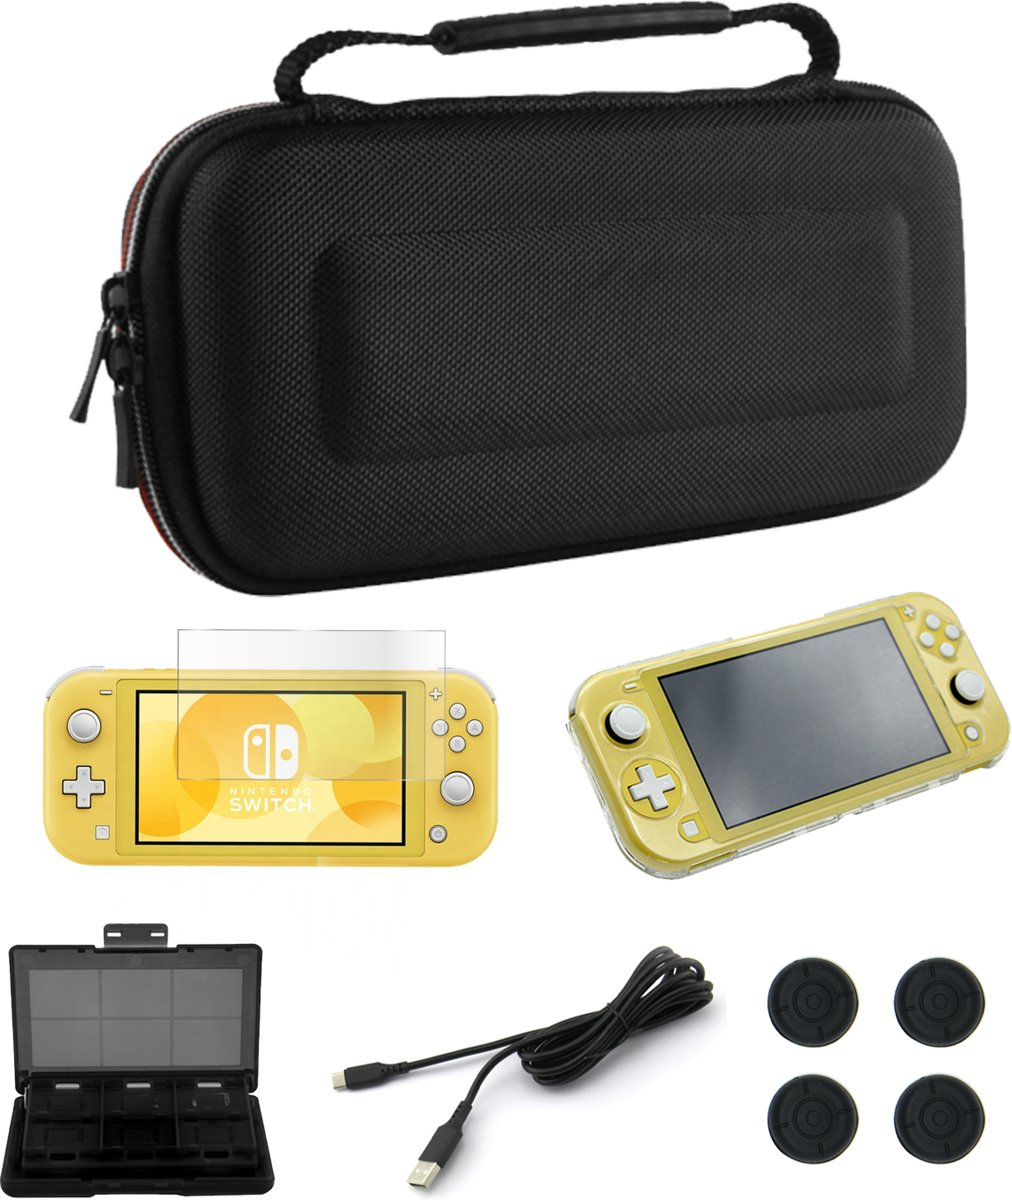 Nintendo Switch case - Nintendo switch accessoires - Gratis Screenprotector - Gamecard case - Usb Kabel - Thumb grips - Hardcase